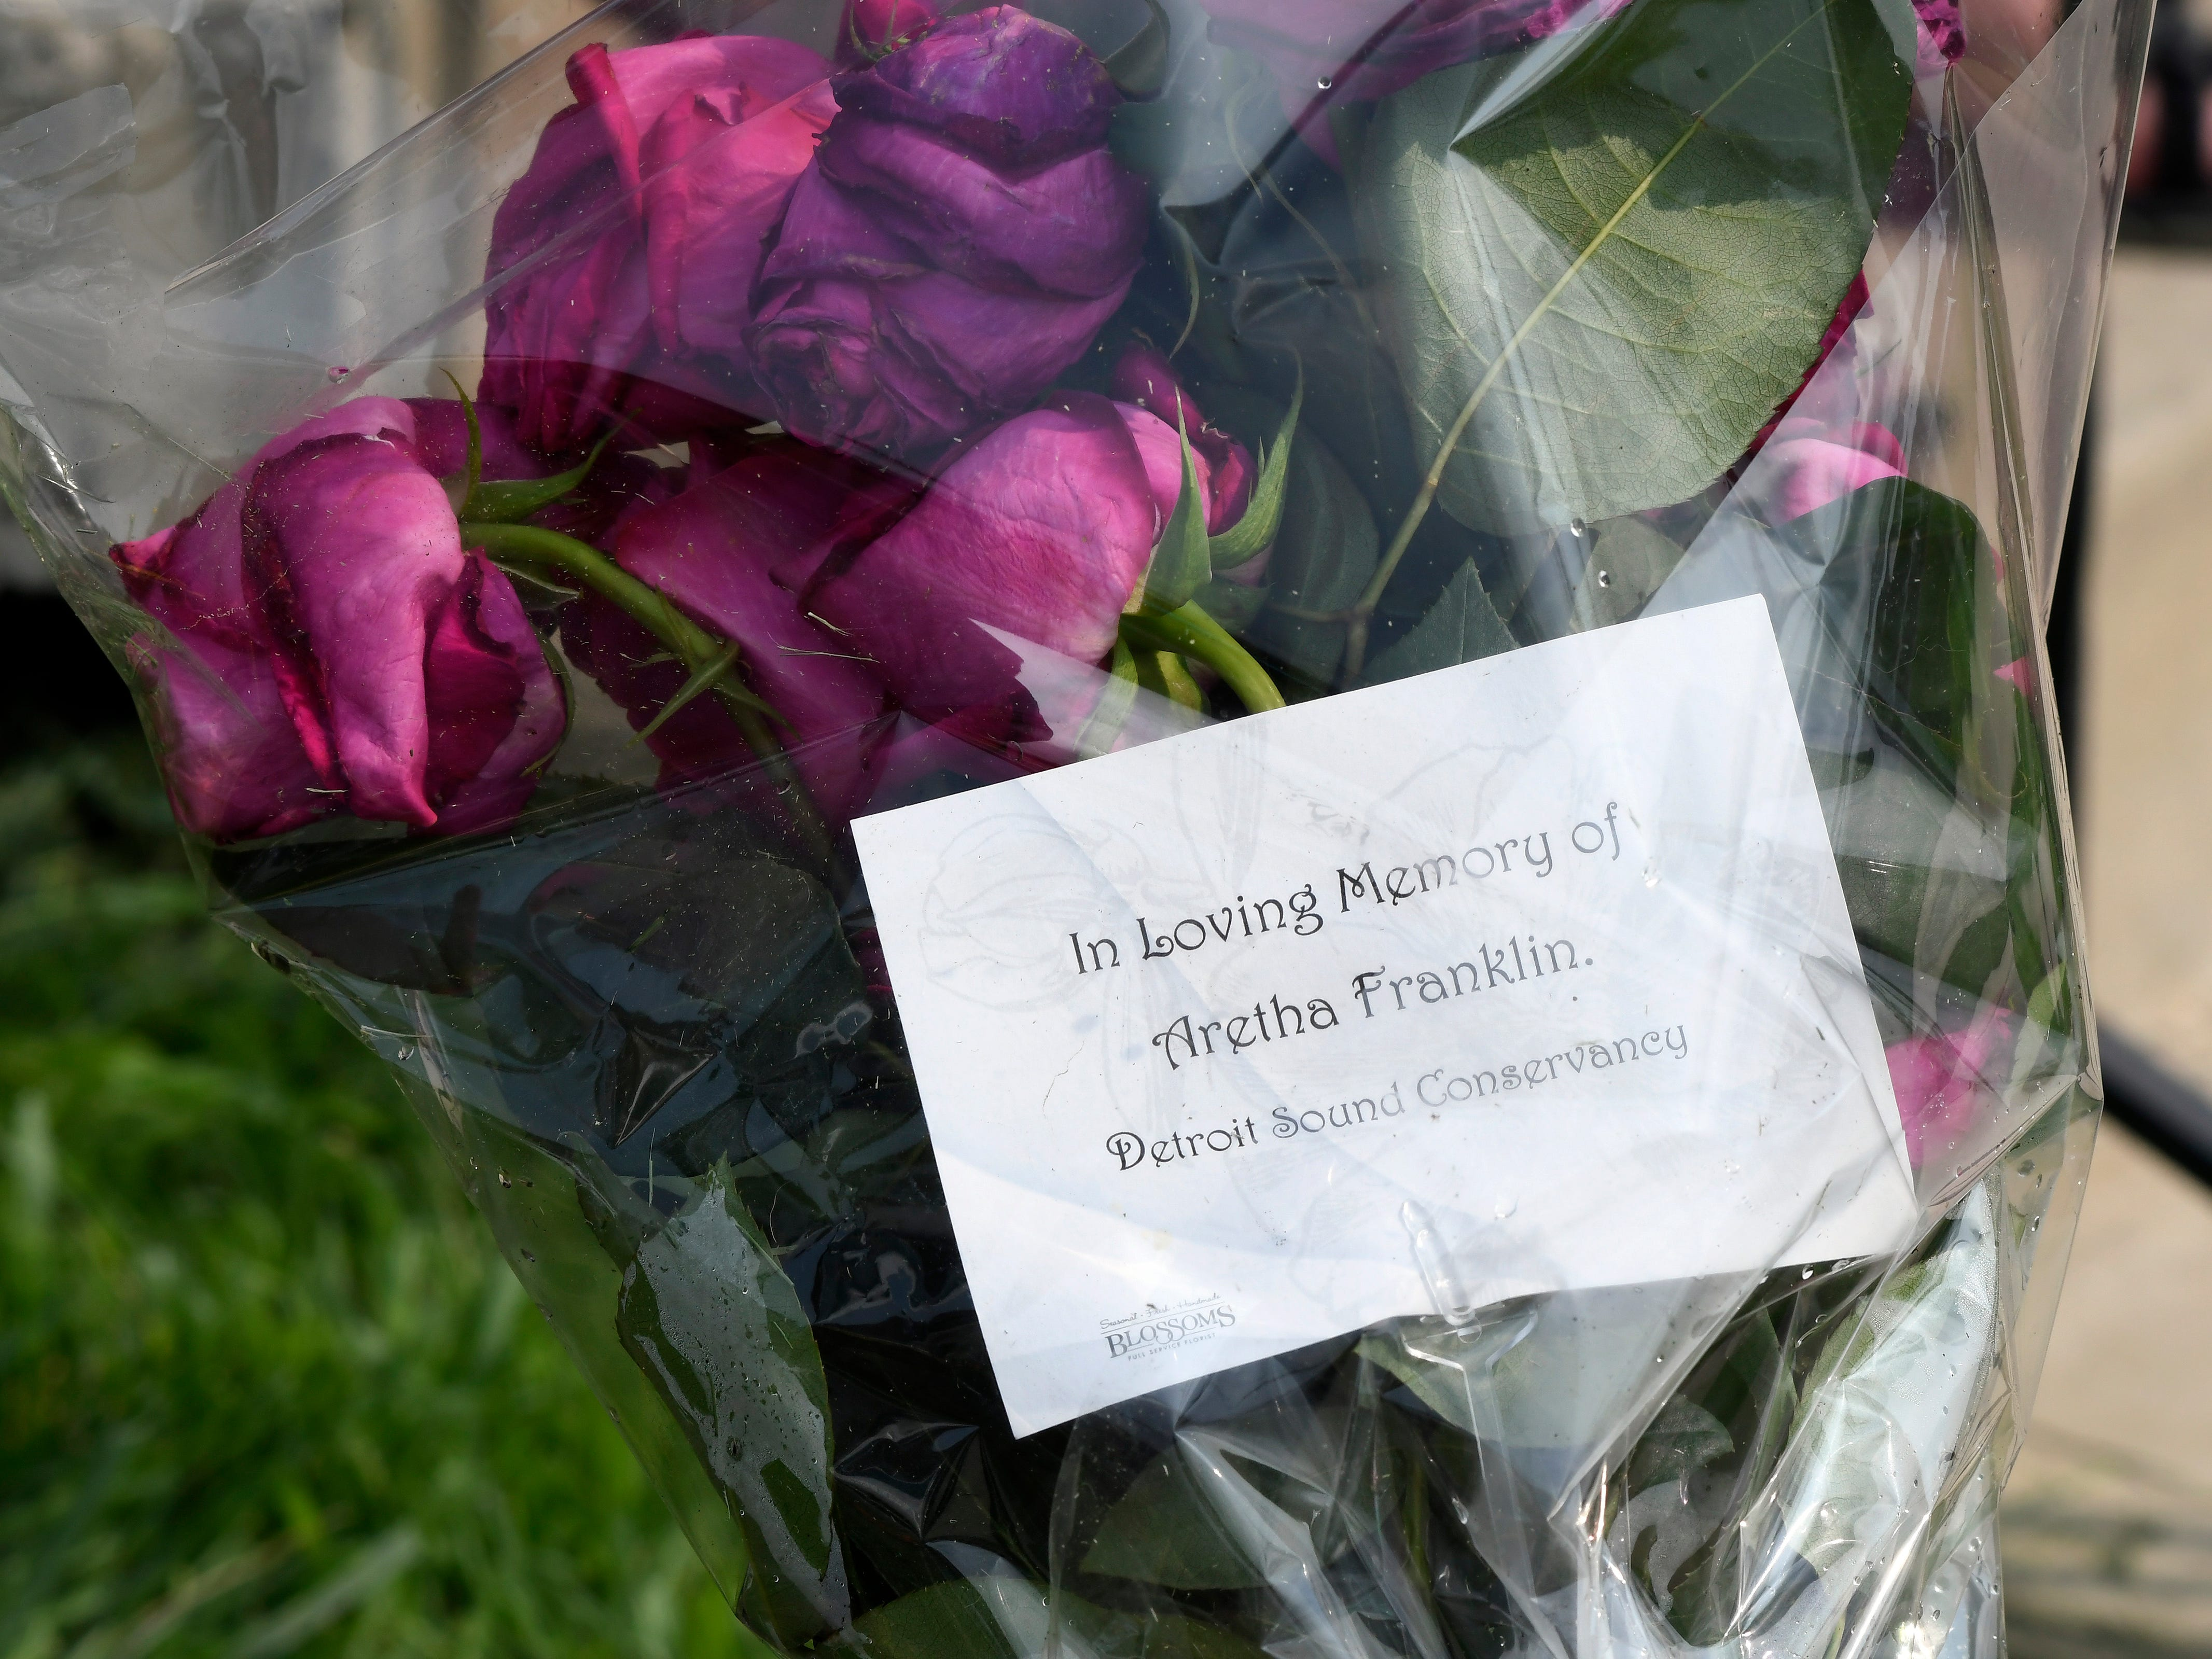 Flowers are placed outside United Sound Systems Recording Studios to honor Aretha Franklin, who recorded much of her music there.